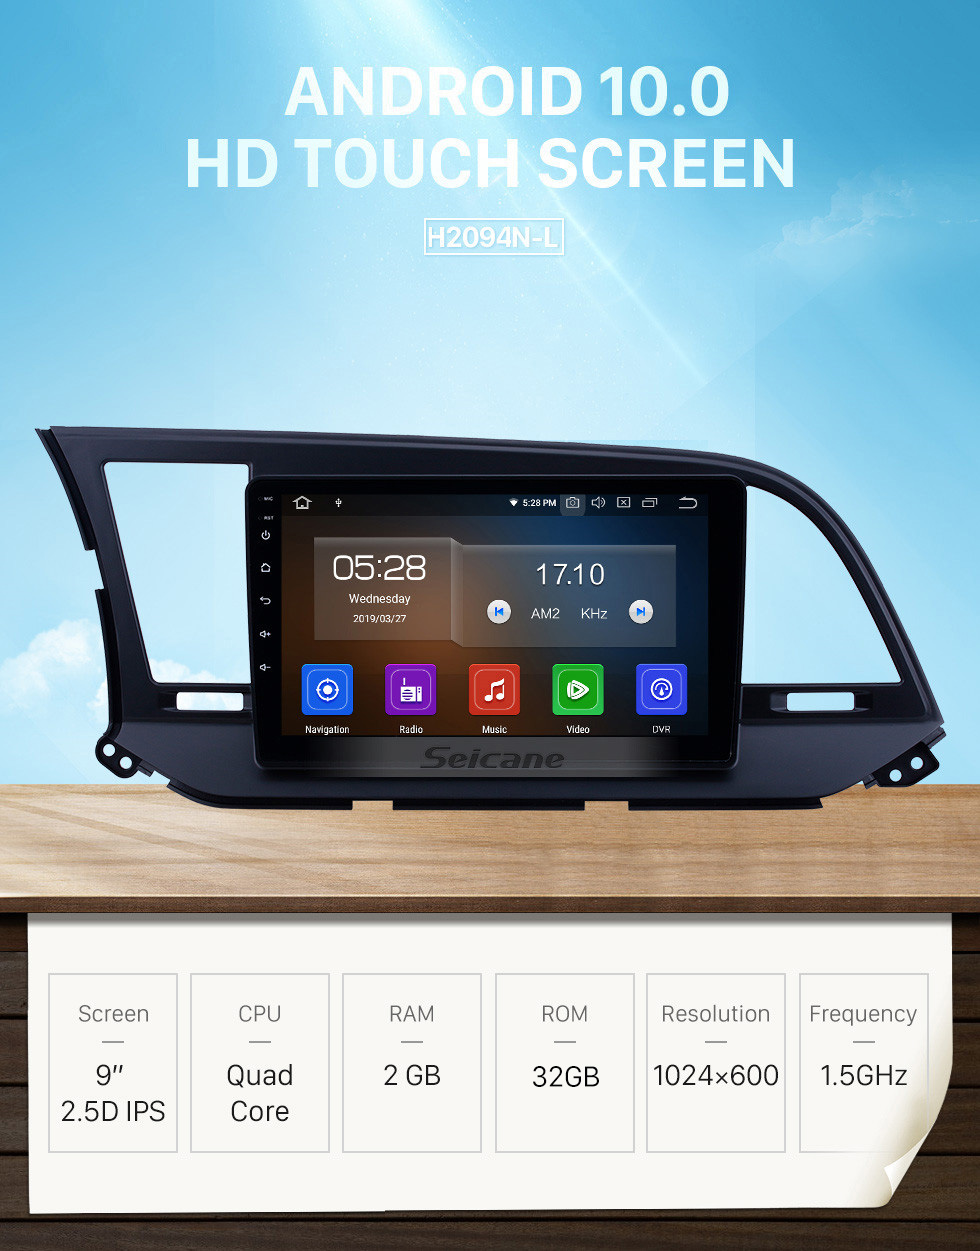 Seicane 9 inch aftermarket Android 10.0 HD Touchscreen Head Unit GPS Navigation System For 2016 Hyundai  Elantra LHD with USB Support OBD II DVR  3G/4G WIFI Rearview Camera